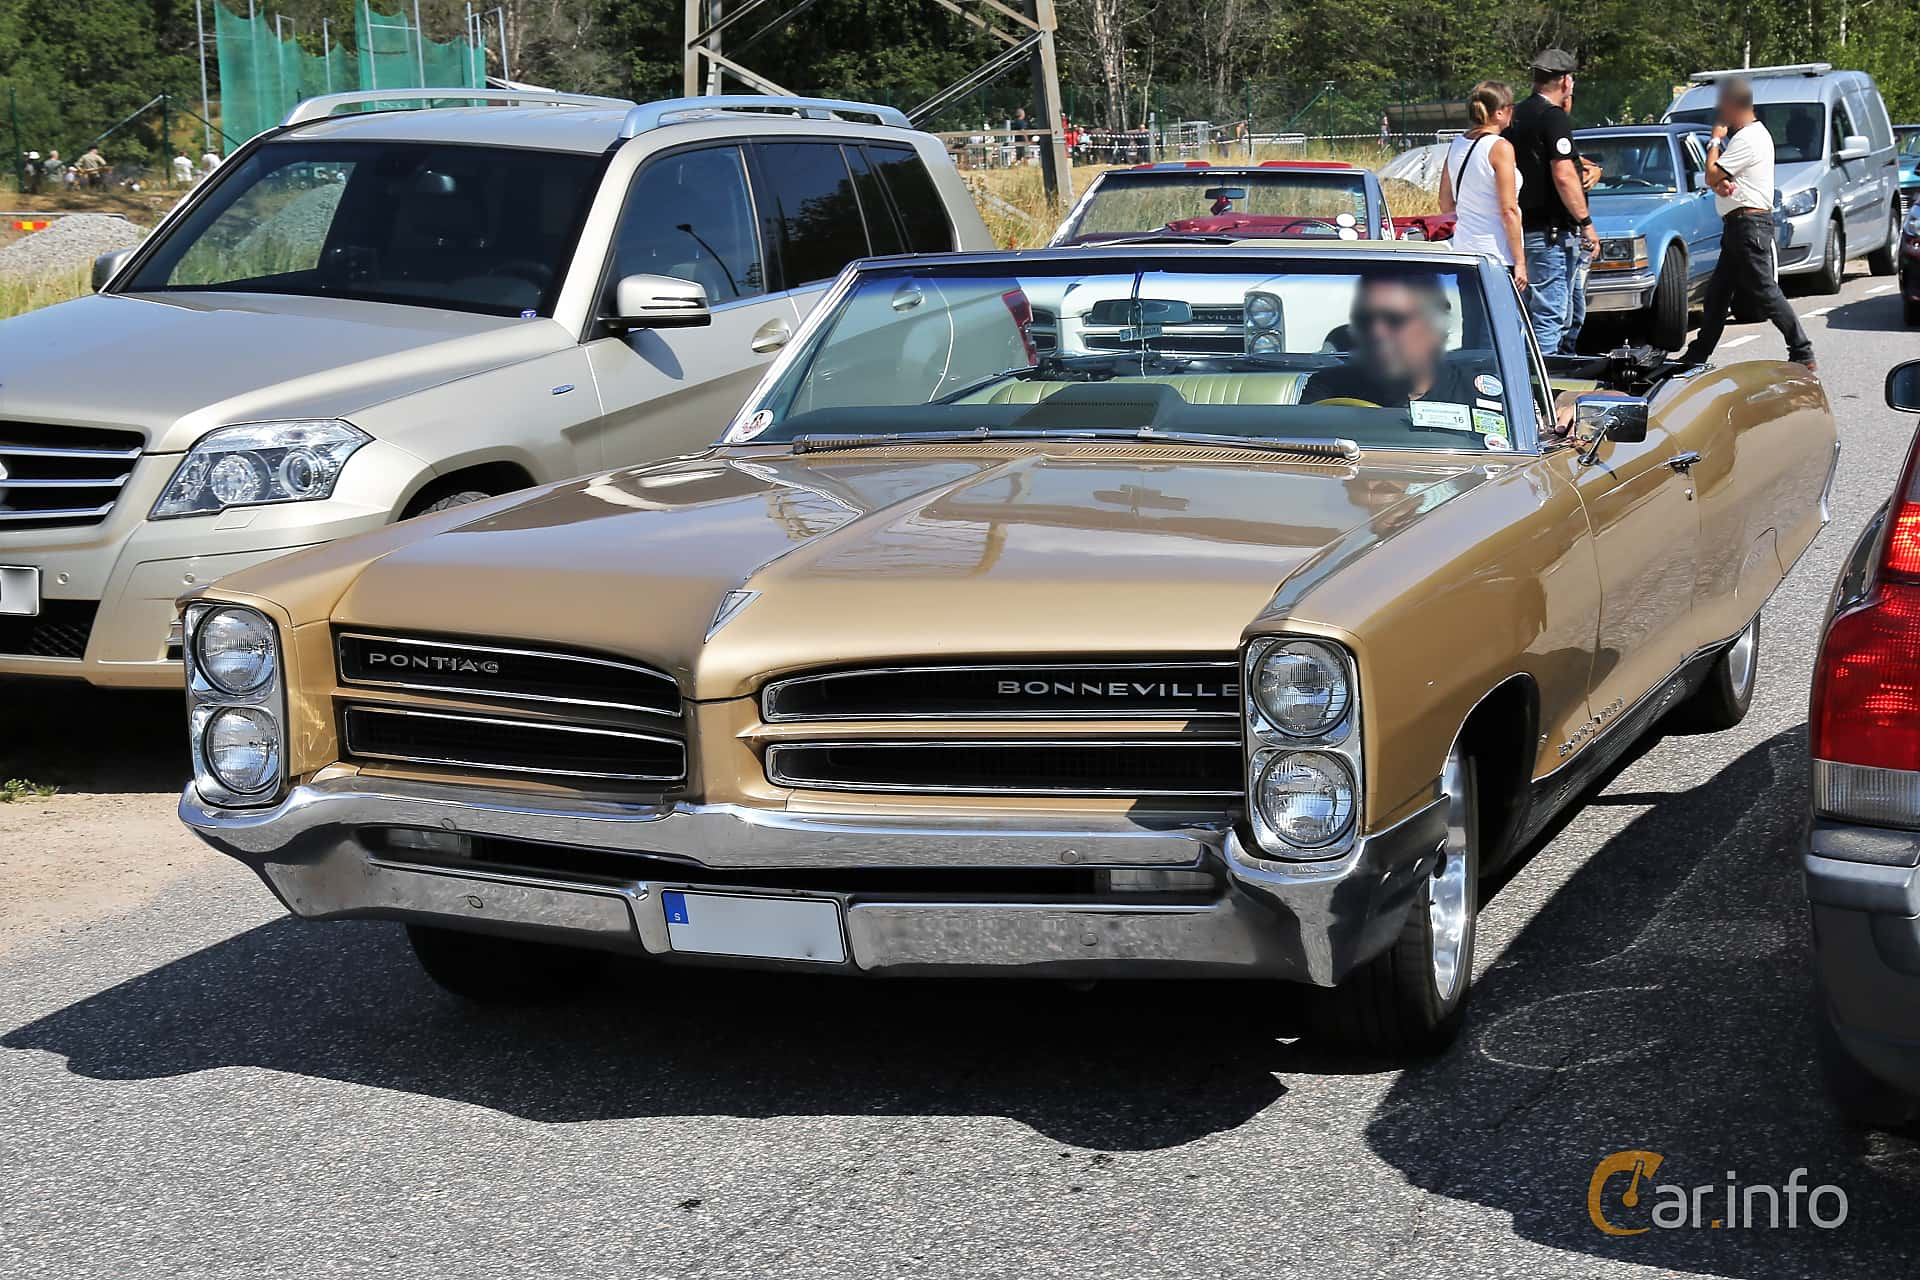 Front/Side  of Pontiac Bonneville Convertible 6.4 V8 Hydra-Matic, 329ps, 1966 at A-bombers - Old Style Weekend Backamo 2019